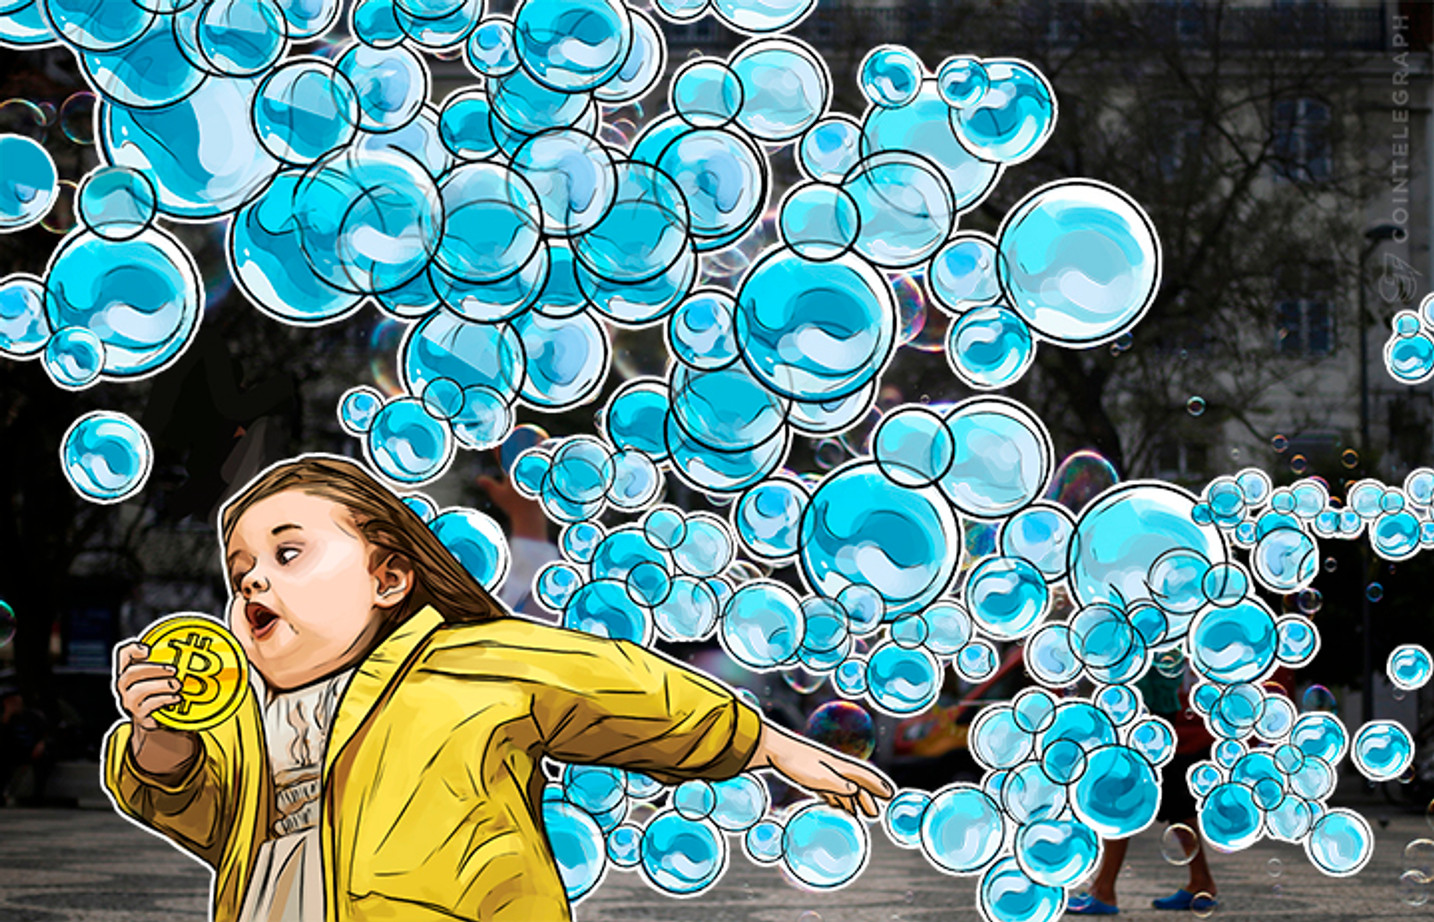 New Bitcoin Price All Time High, New Bubble Fears